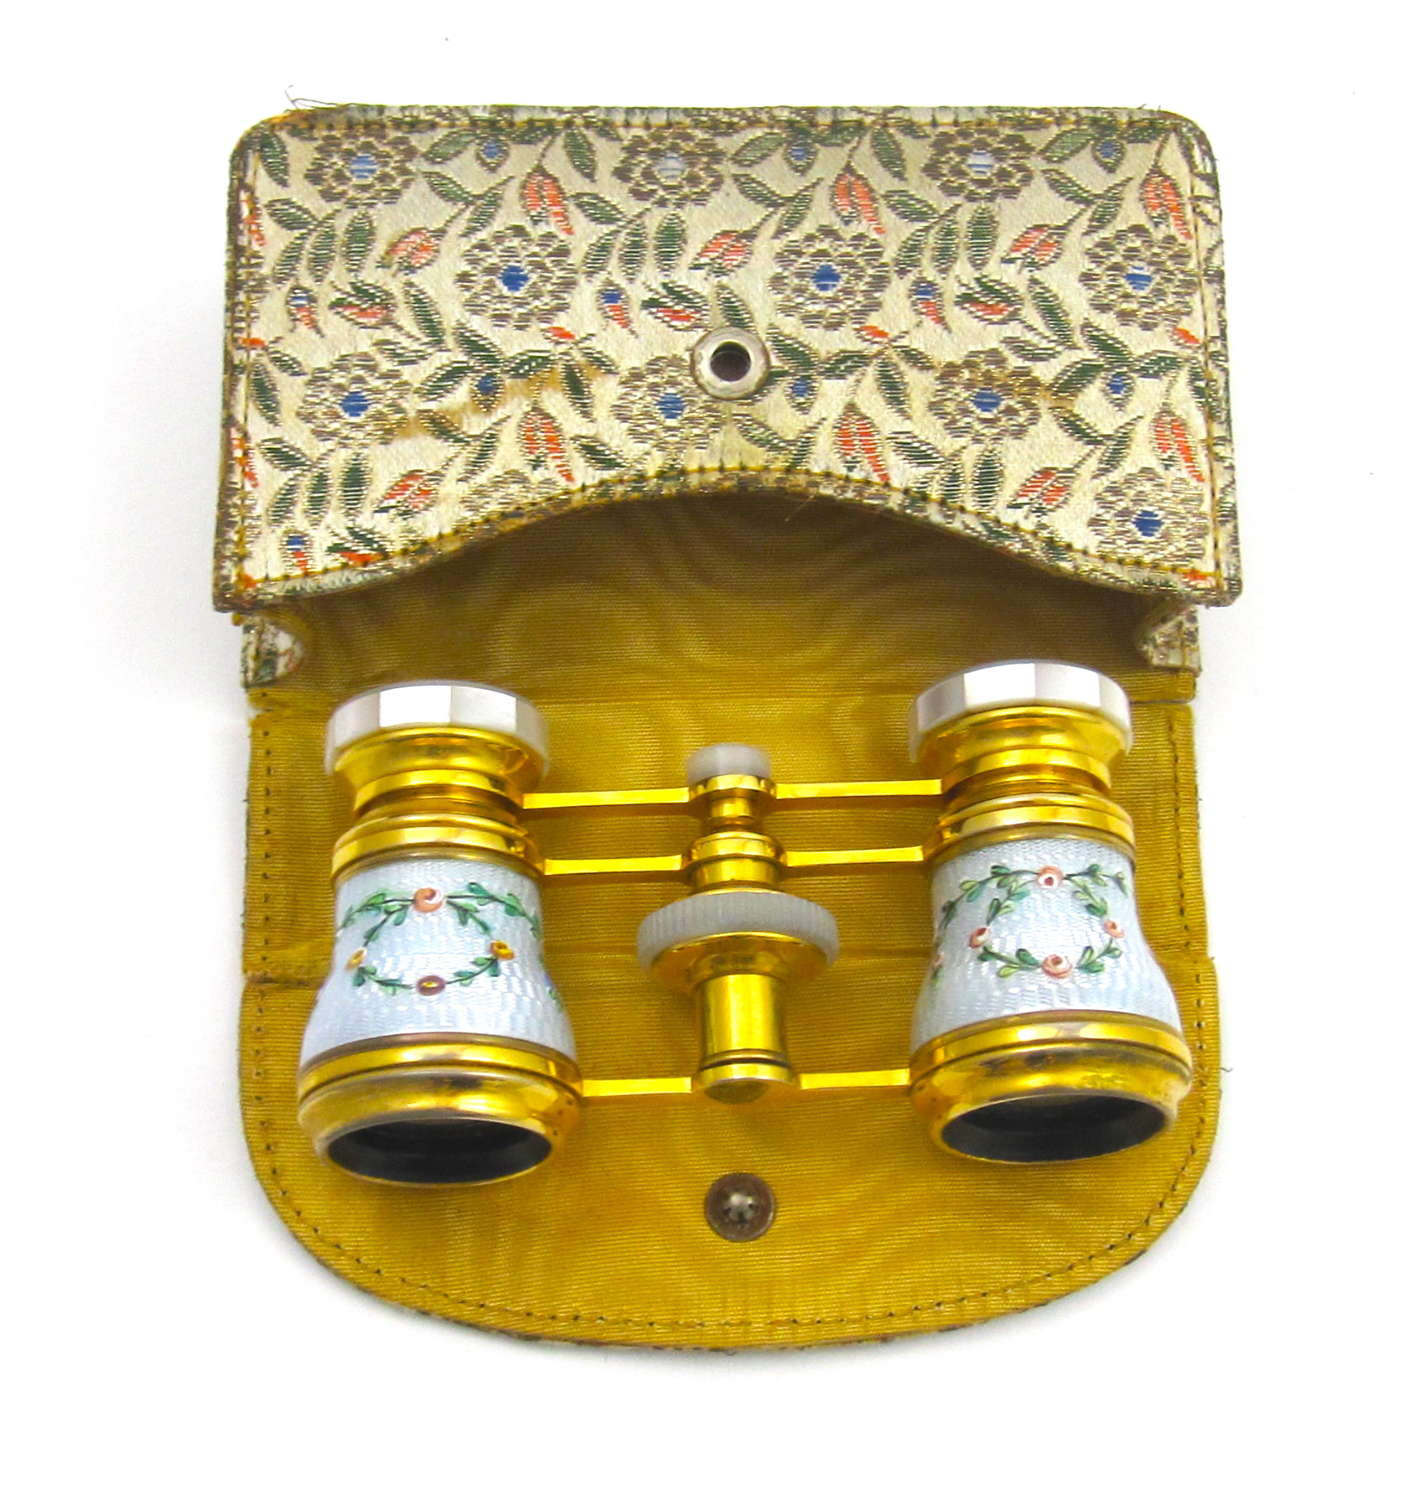 Pair of Antique French Enamel Opera Glasses and Case